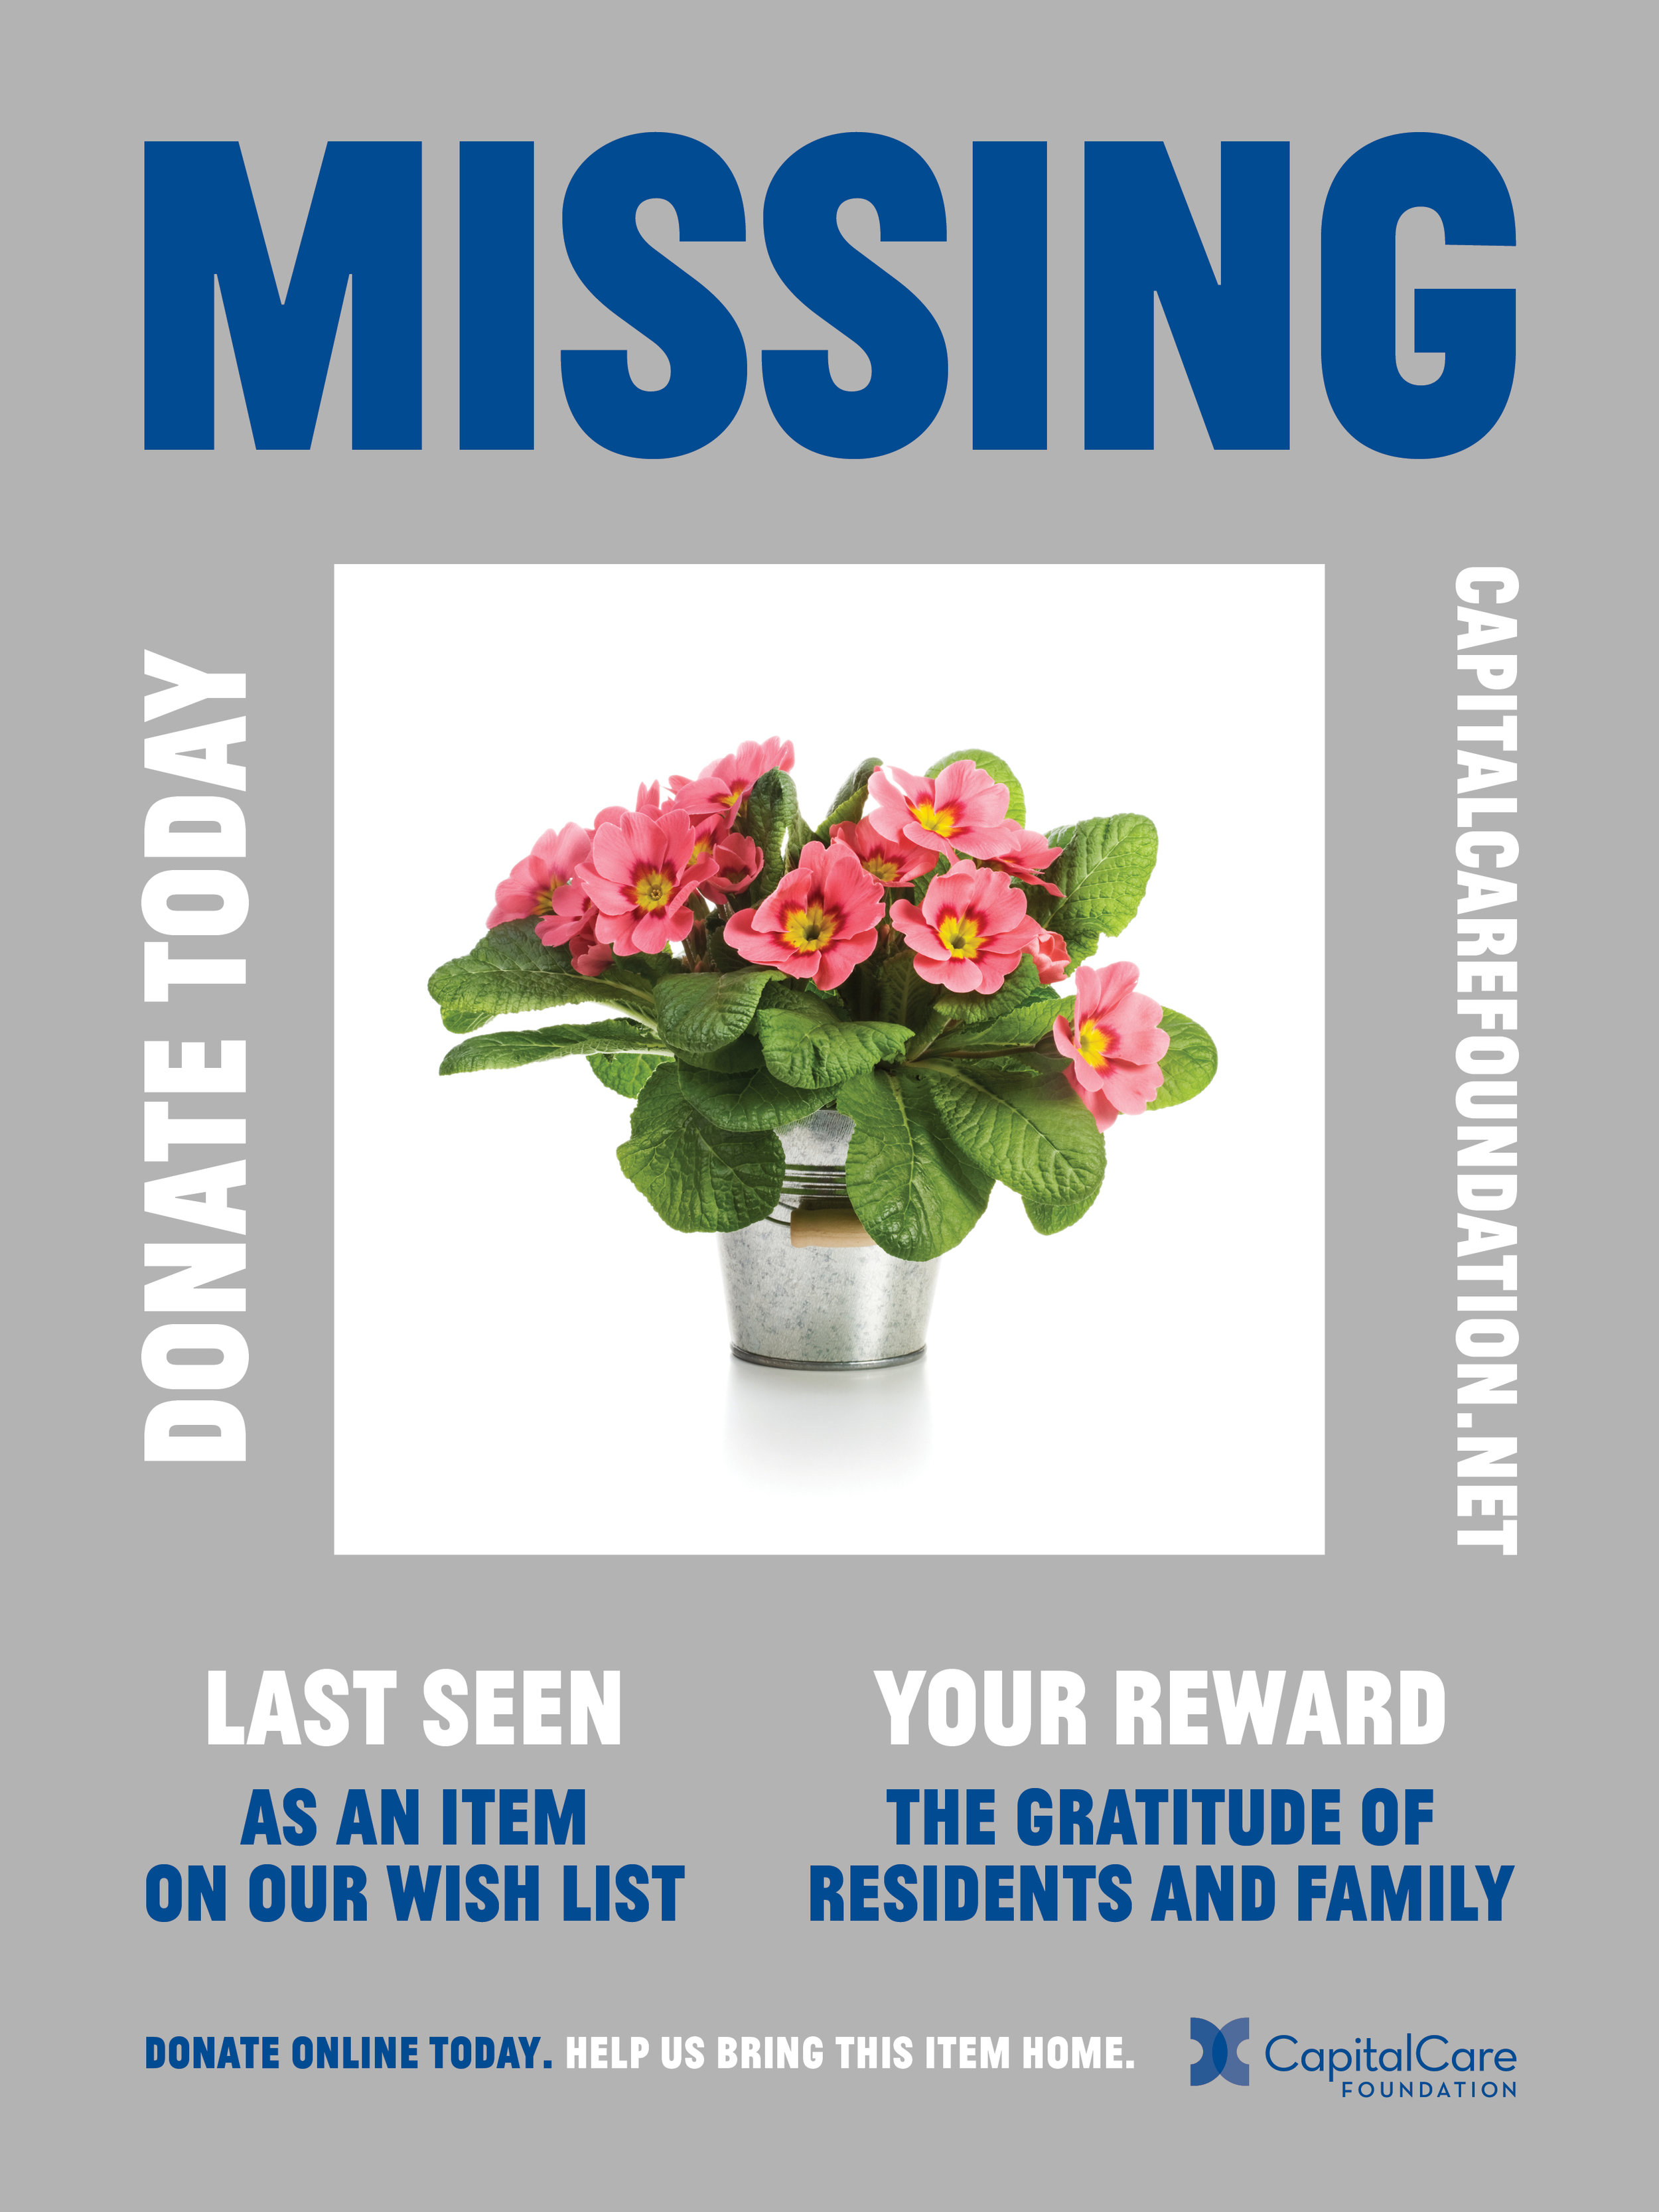 CCF-Fundraising Campaign (New Posters)3.jpg